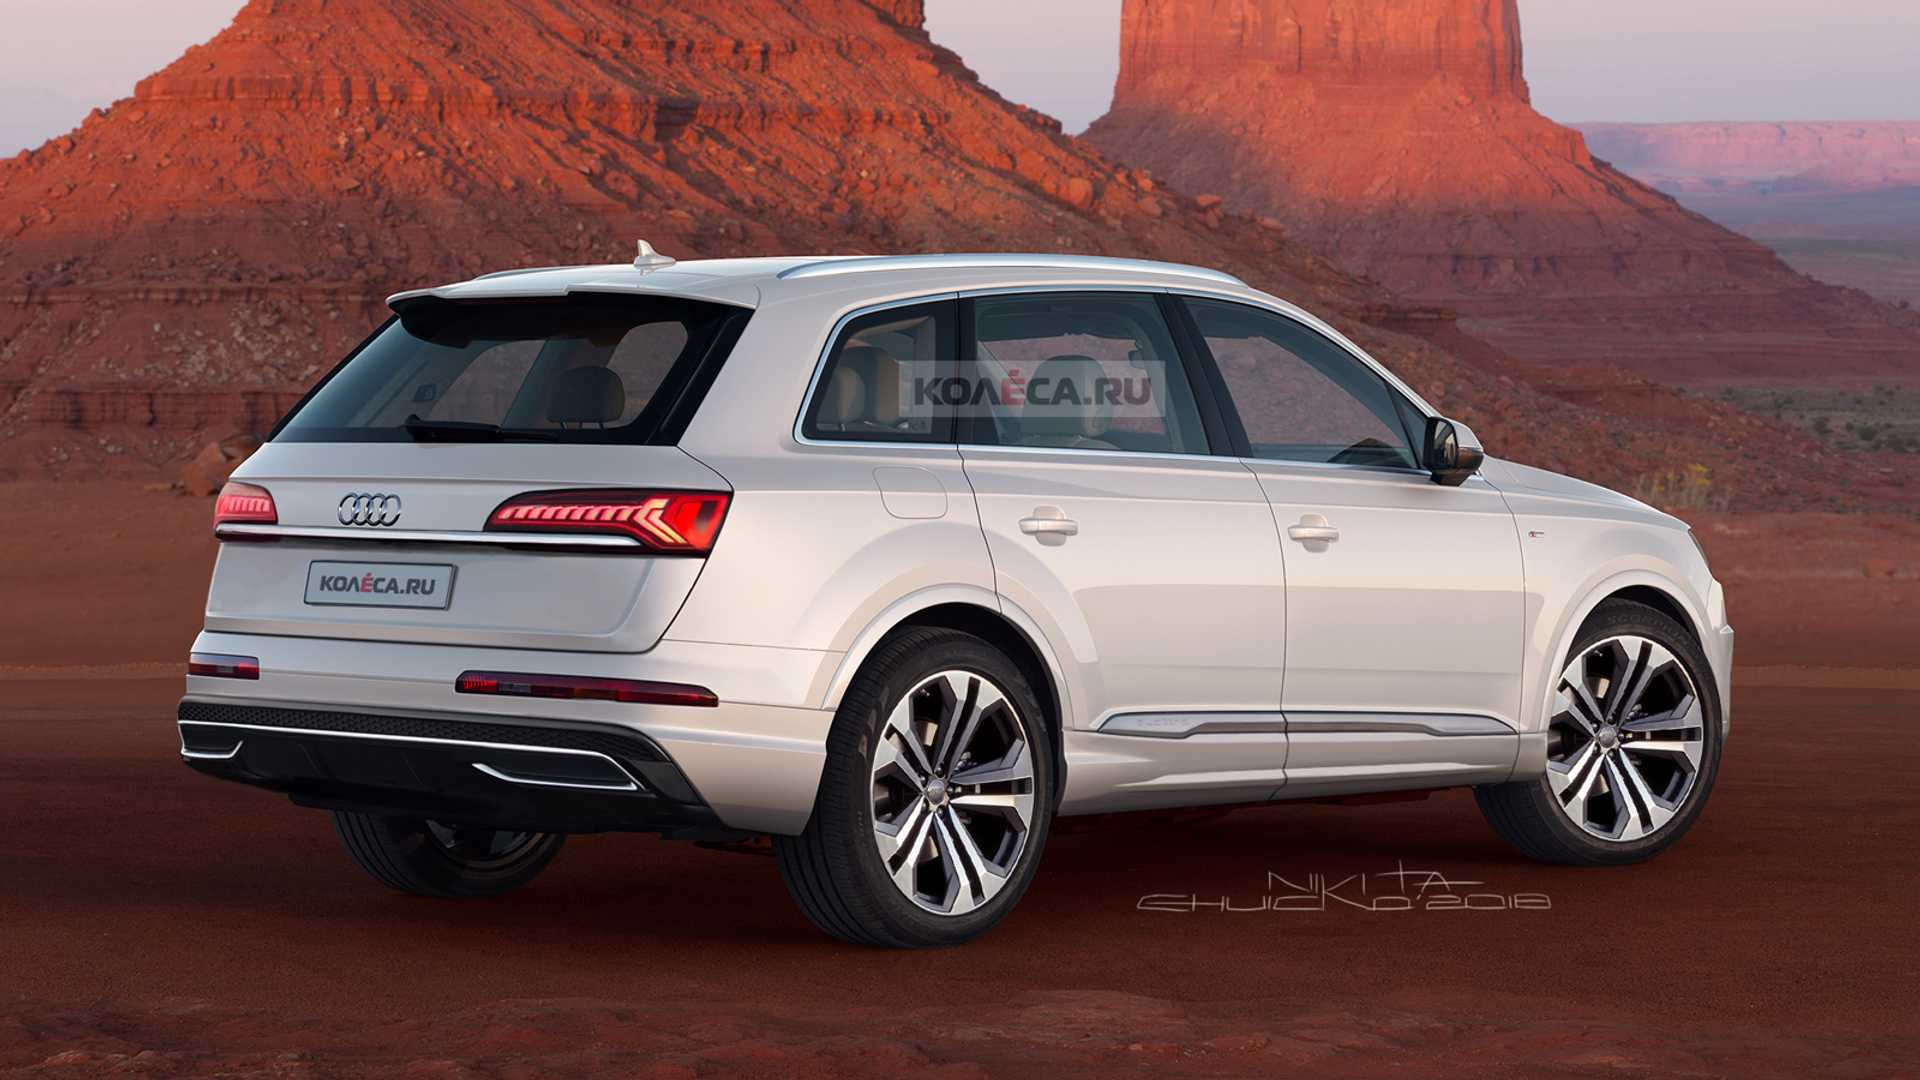 98 The Best 2020 Audi Q7 Changes Price And Release Date